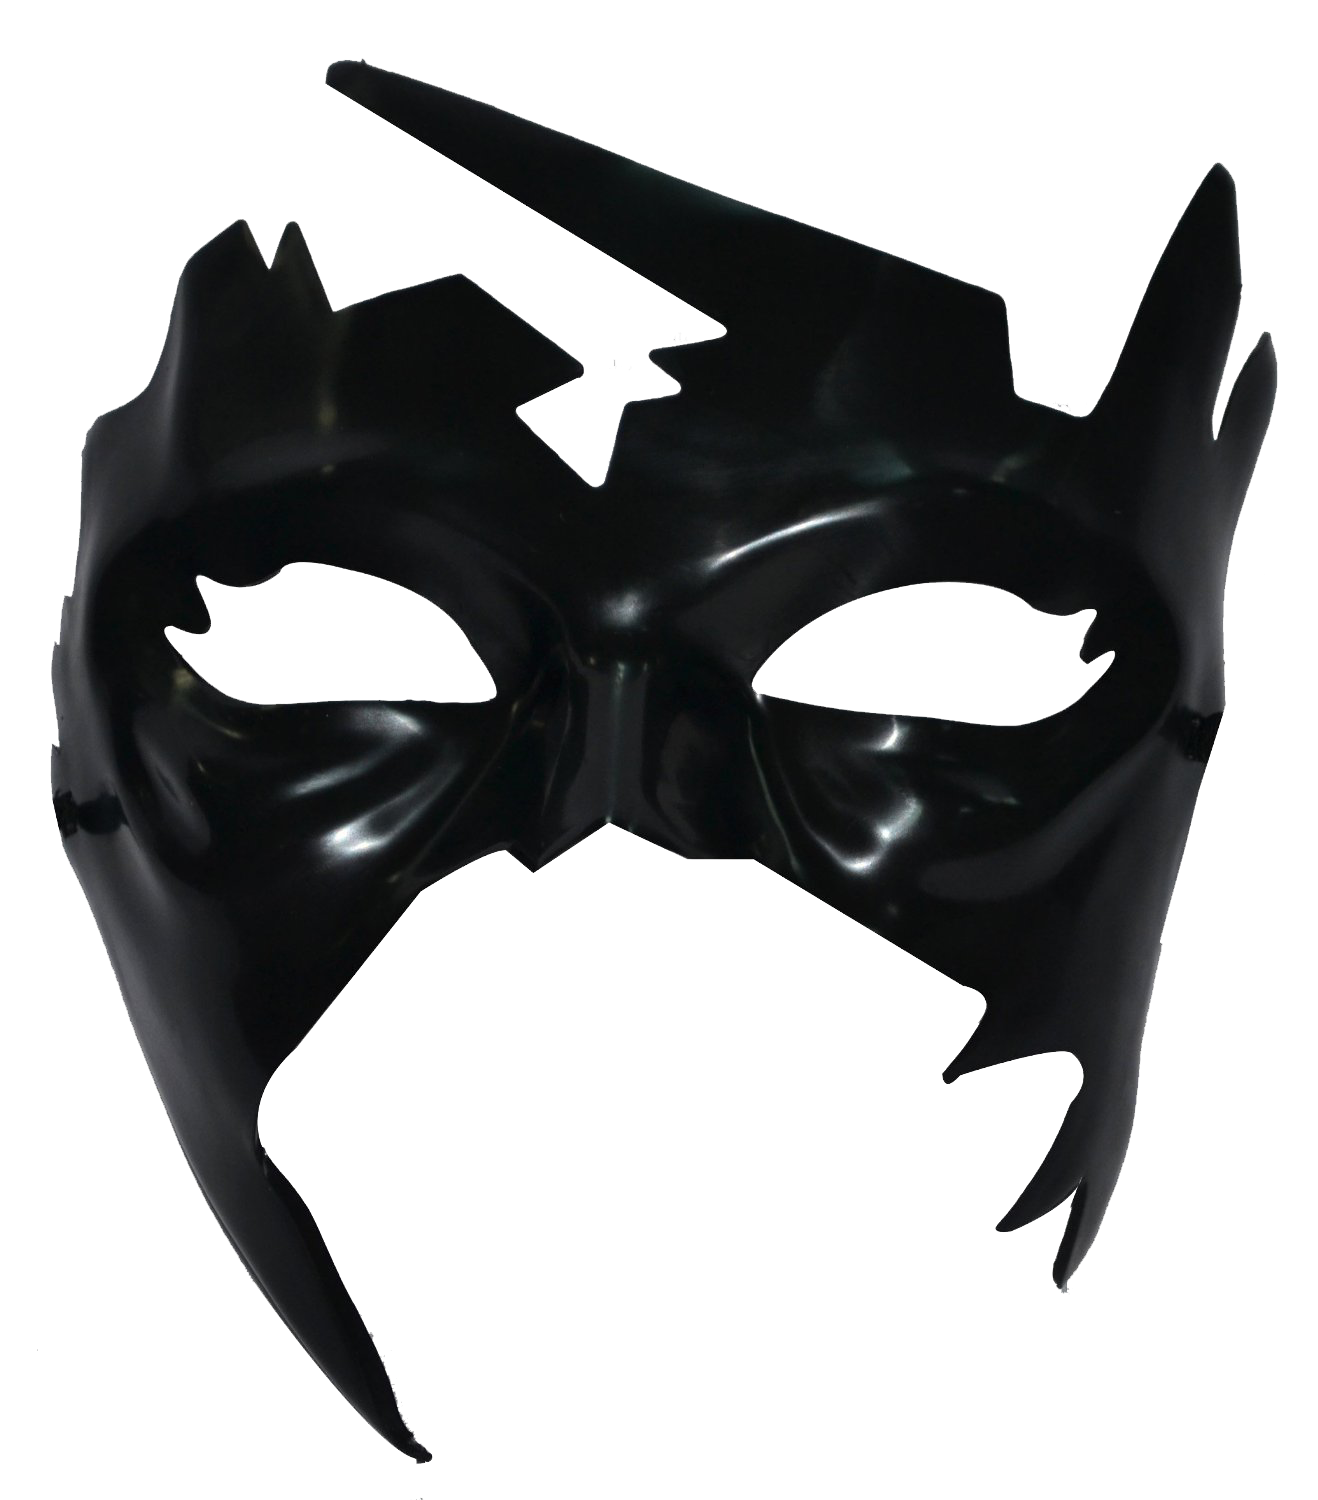 Batman car clipart banner free library Batman Mask Clipart full - Free Clipart on Dumielauxepices.net banner free library